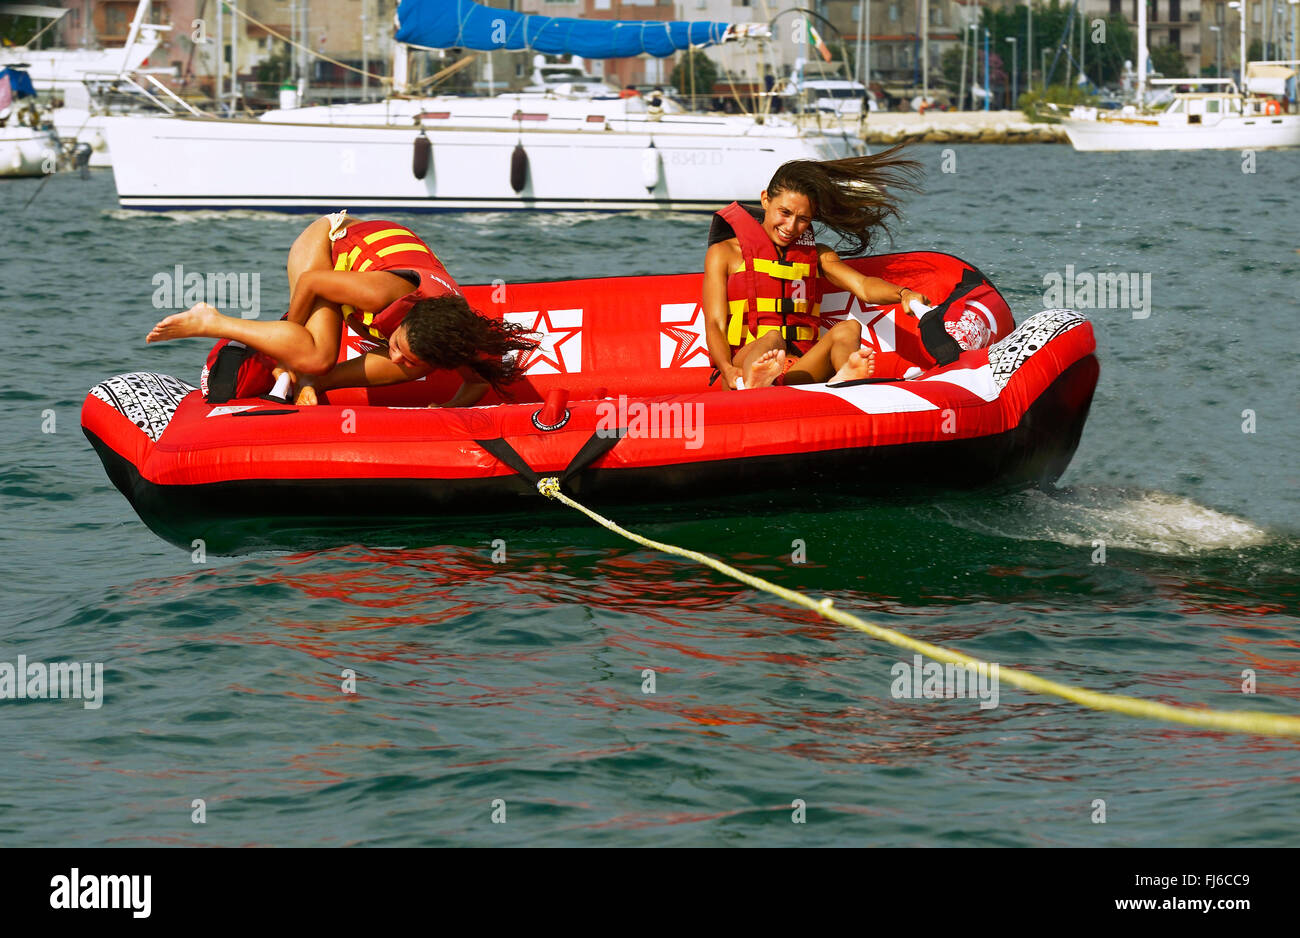 Marvelous Two Girls Are Be Pulled Over The Water With An Air Couch, France, Corsica